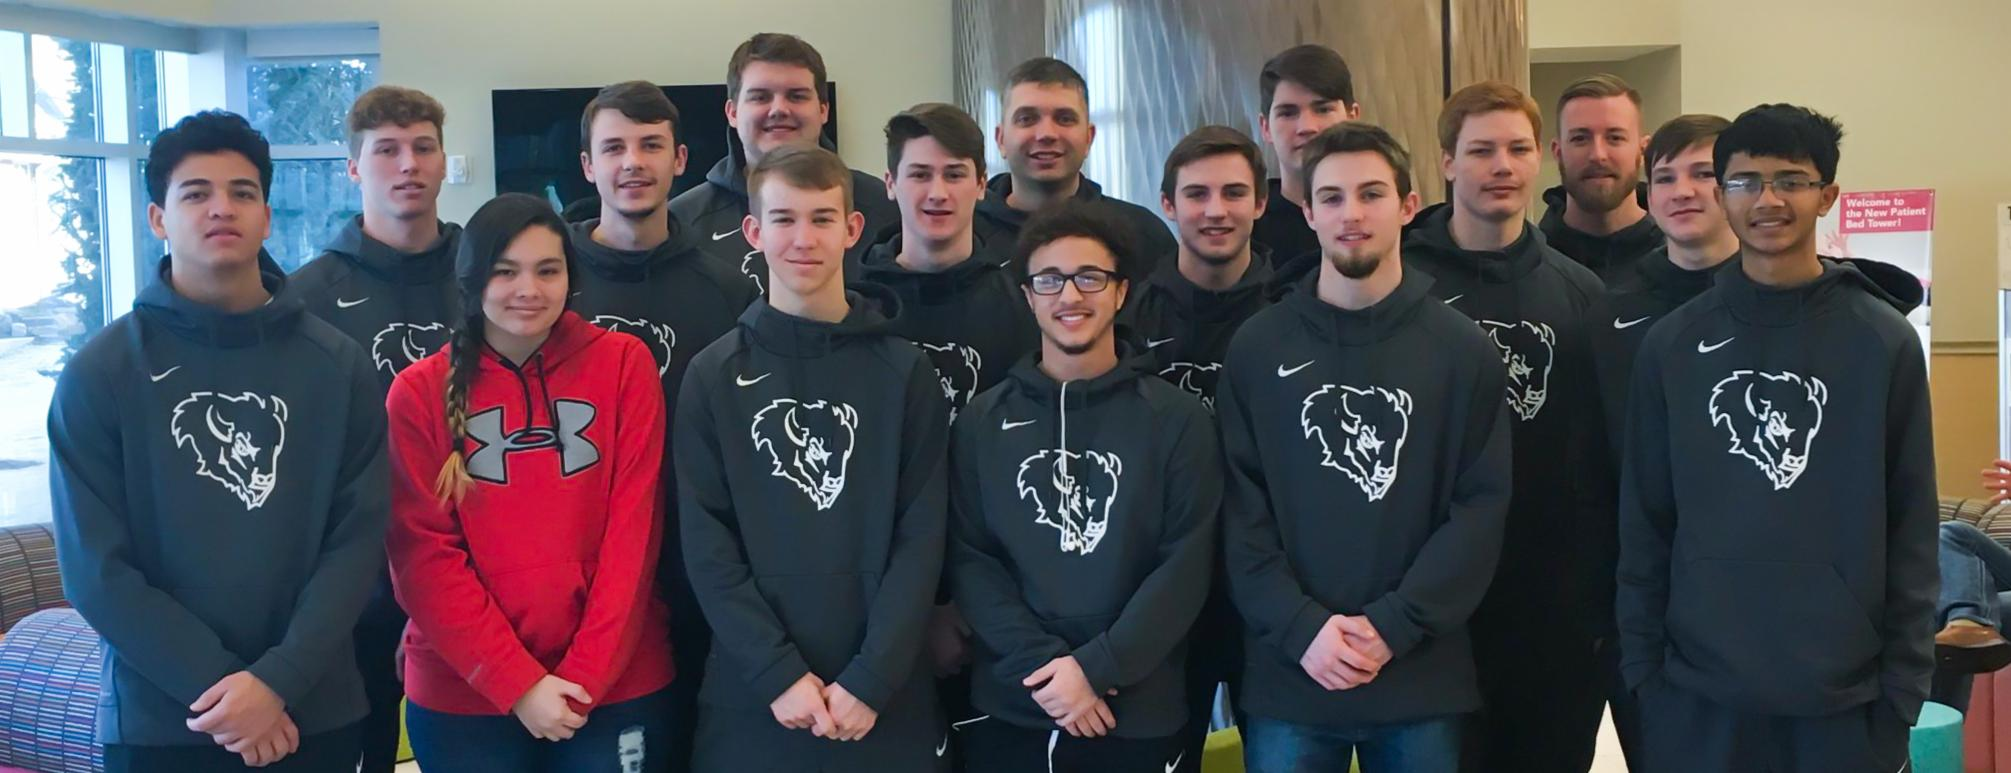 McAlester Boys Basketball Team Visits Pediatric Hospital